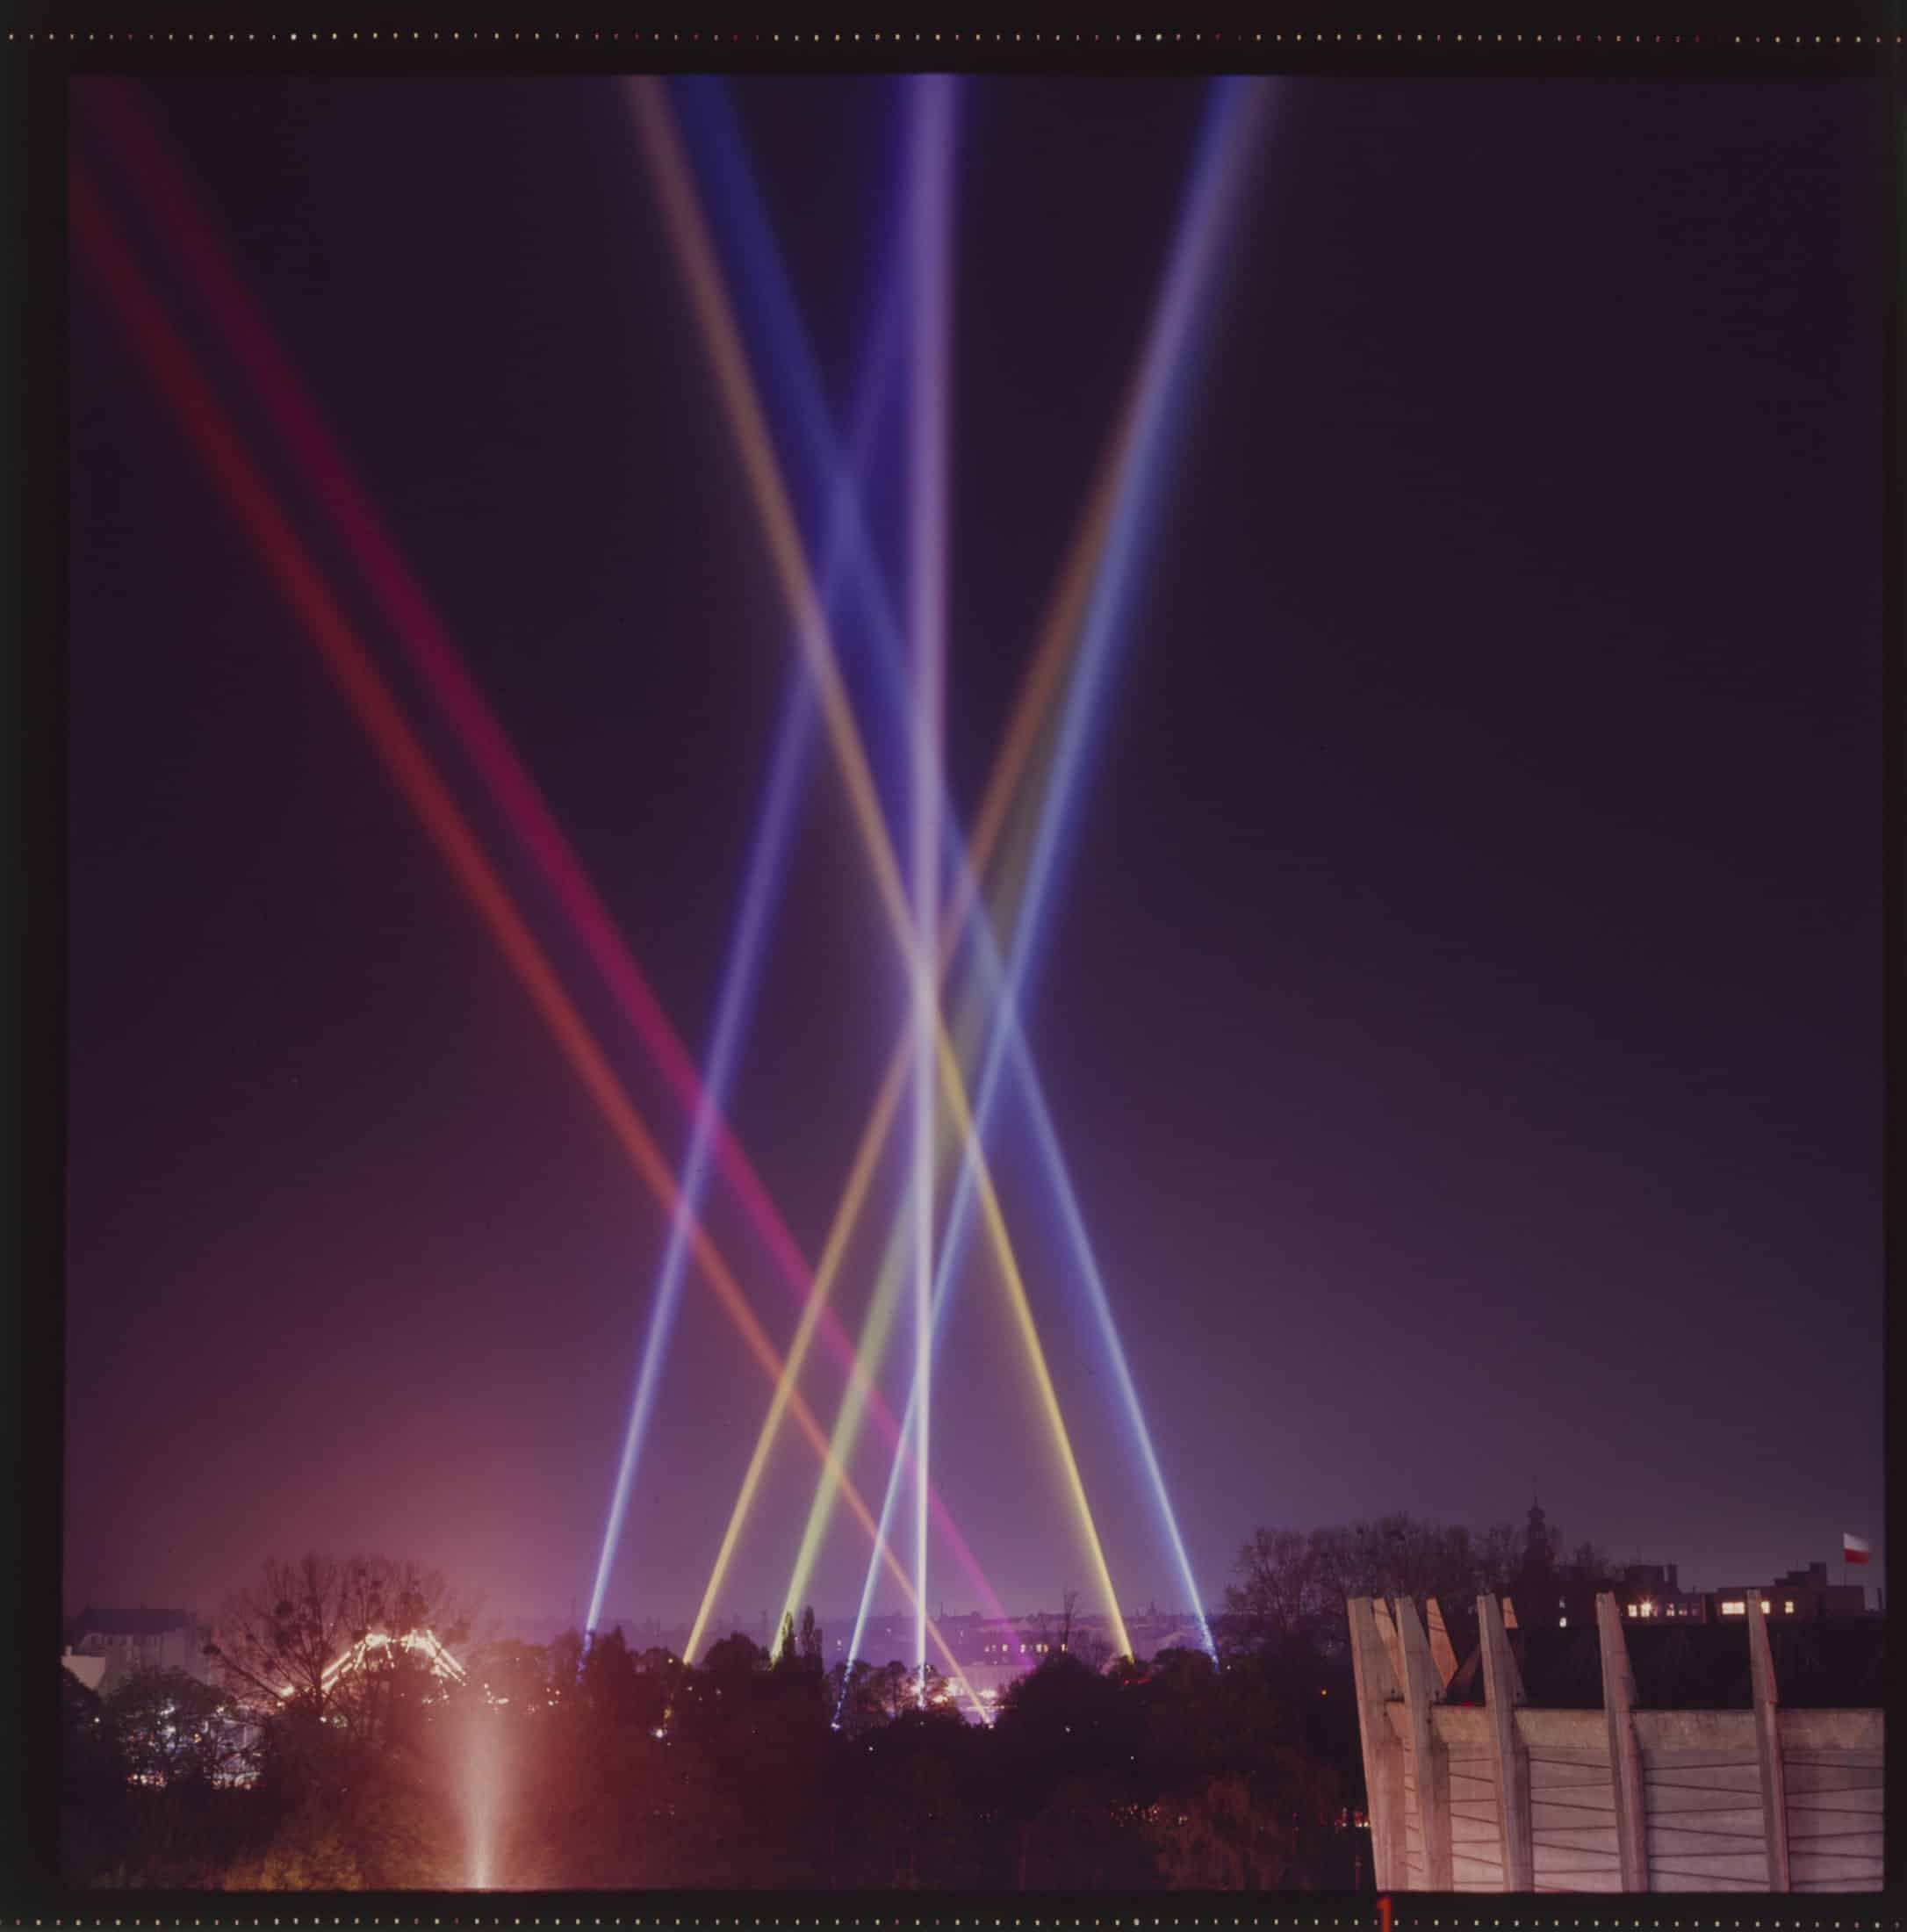 Henryk Stażewski, Unlimited Vertical Composition – Nine Streams of Colour in the Sky, 1970, documentation of the action. Photograph by Michał Diament. MWW collection